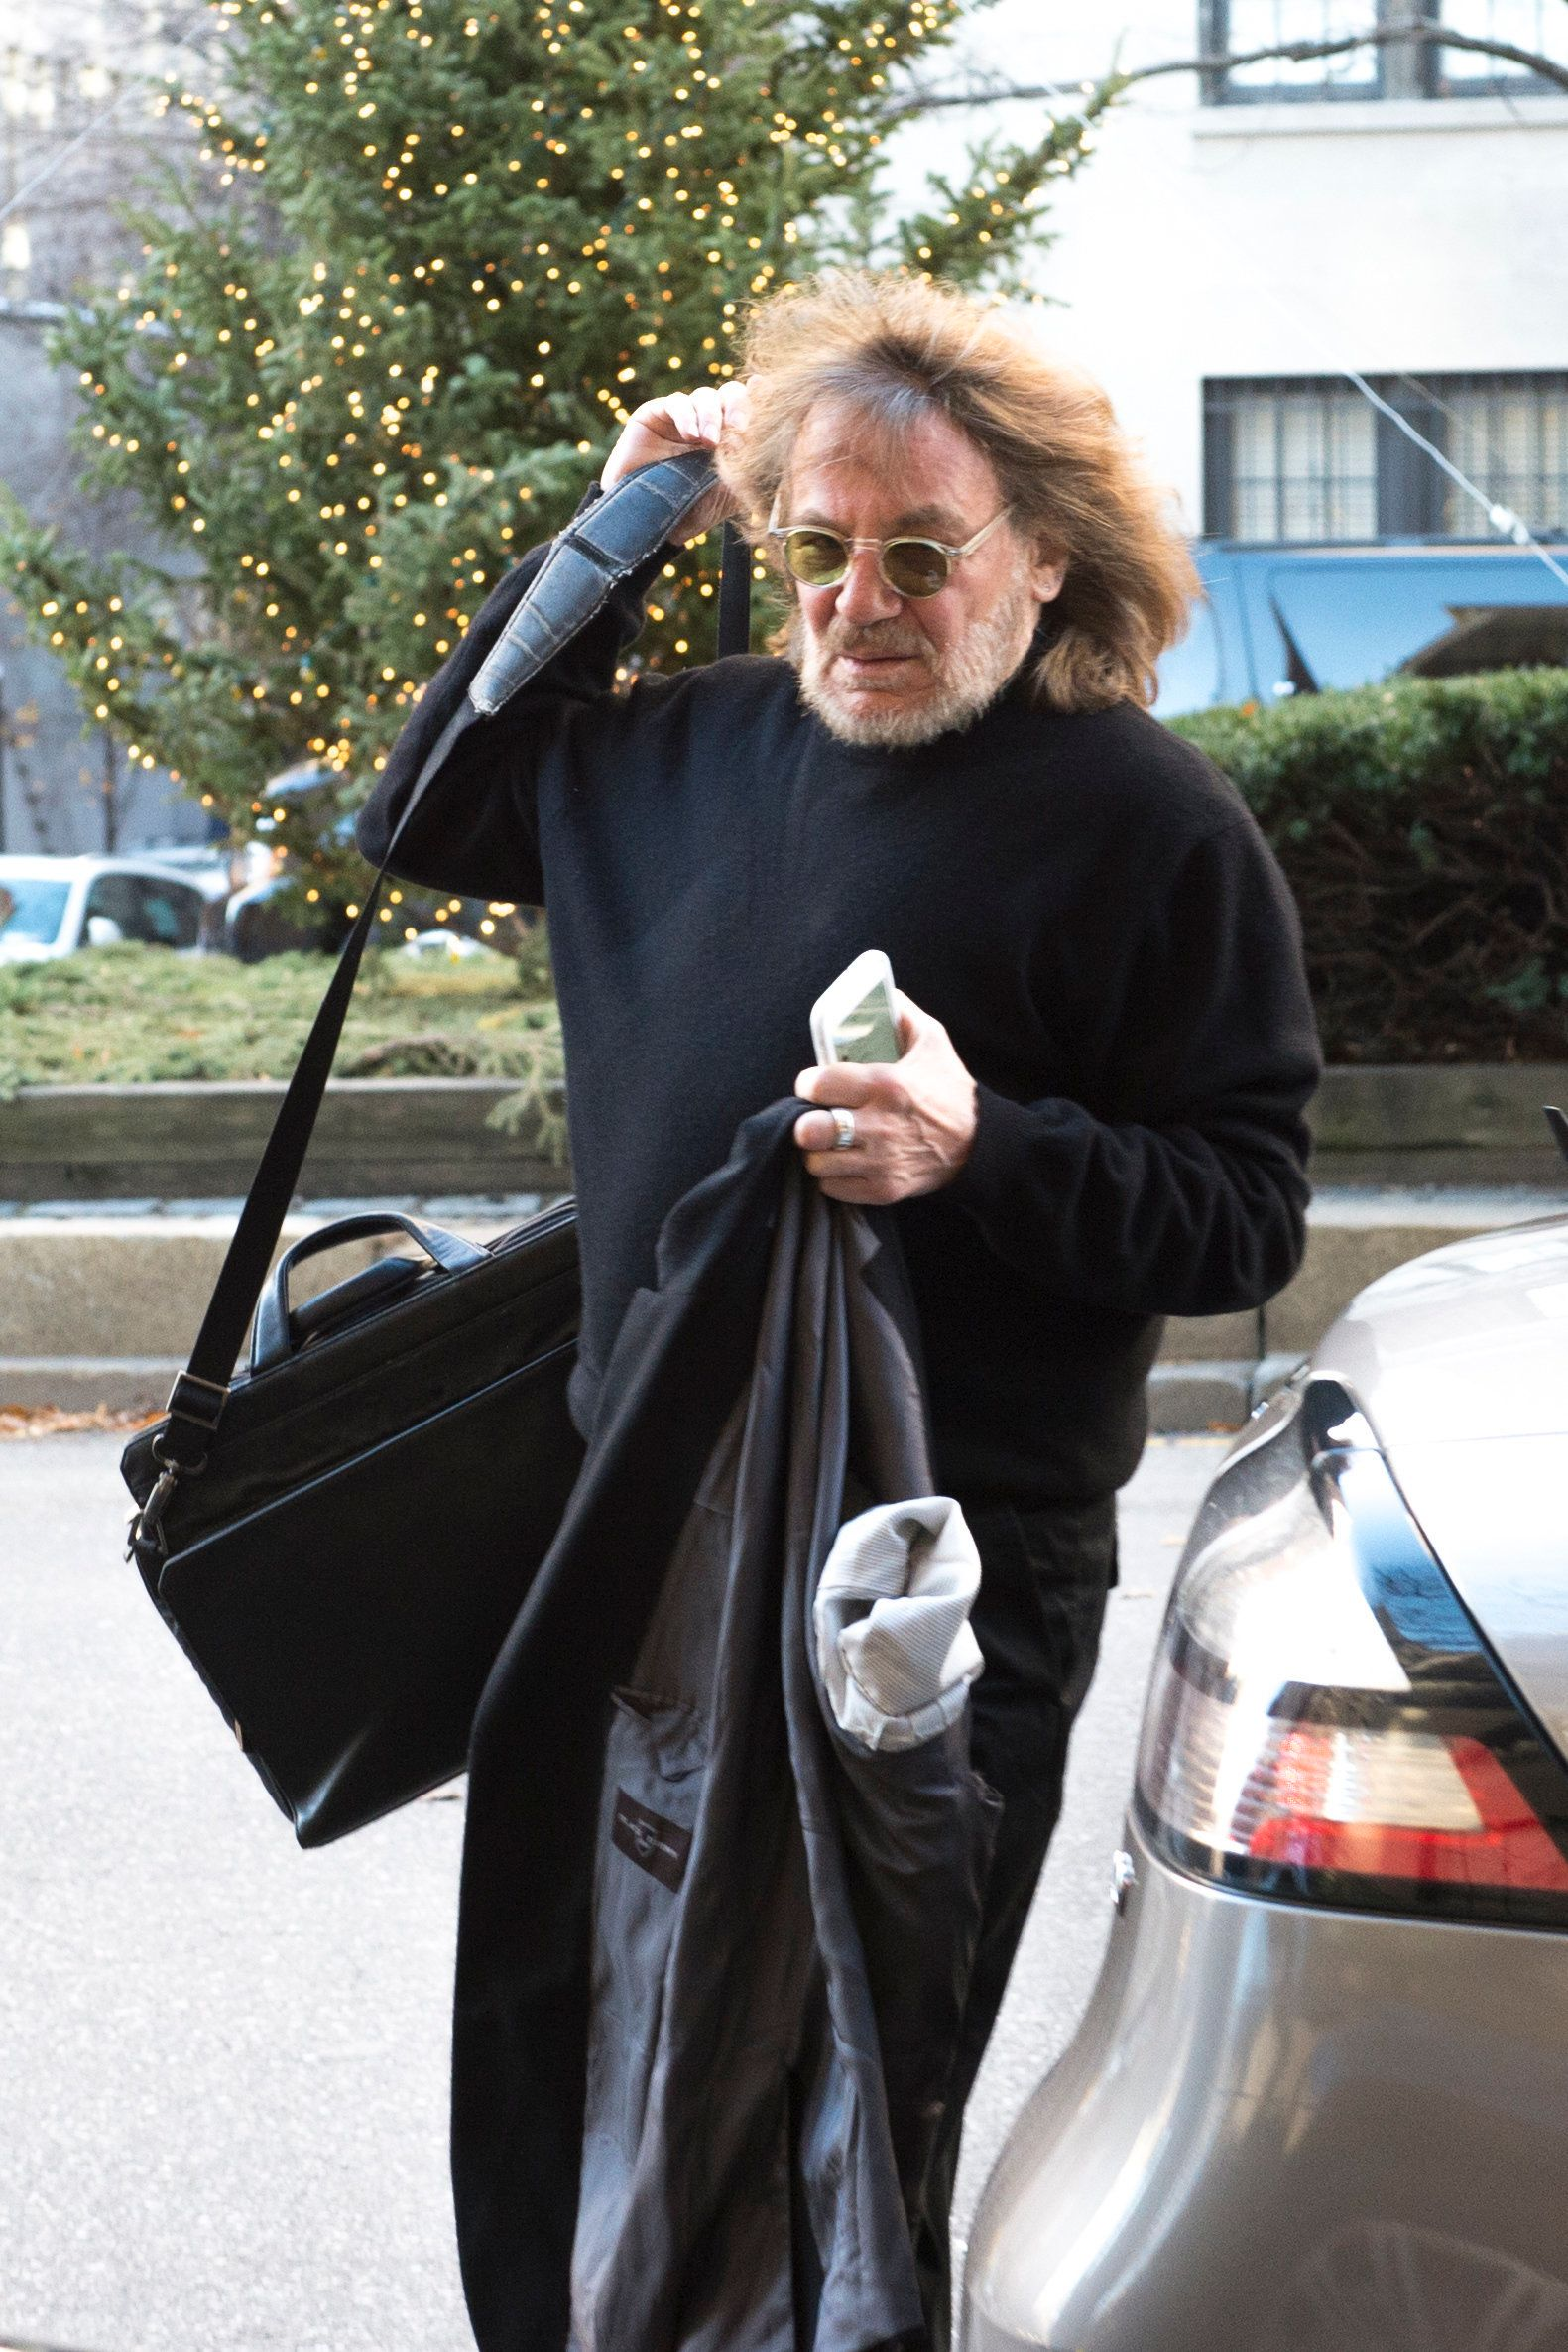 Dr. Harold Bornstein,  personal physician to Donald Trump arrives at his office at 101 East 78th street on Tuesday morning, December 15, 2015. (Photo by Joe Marino/NY Daily News via Getty Images)